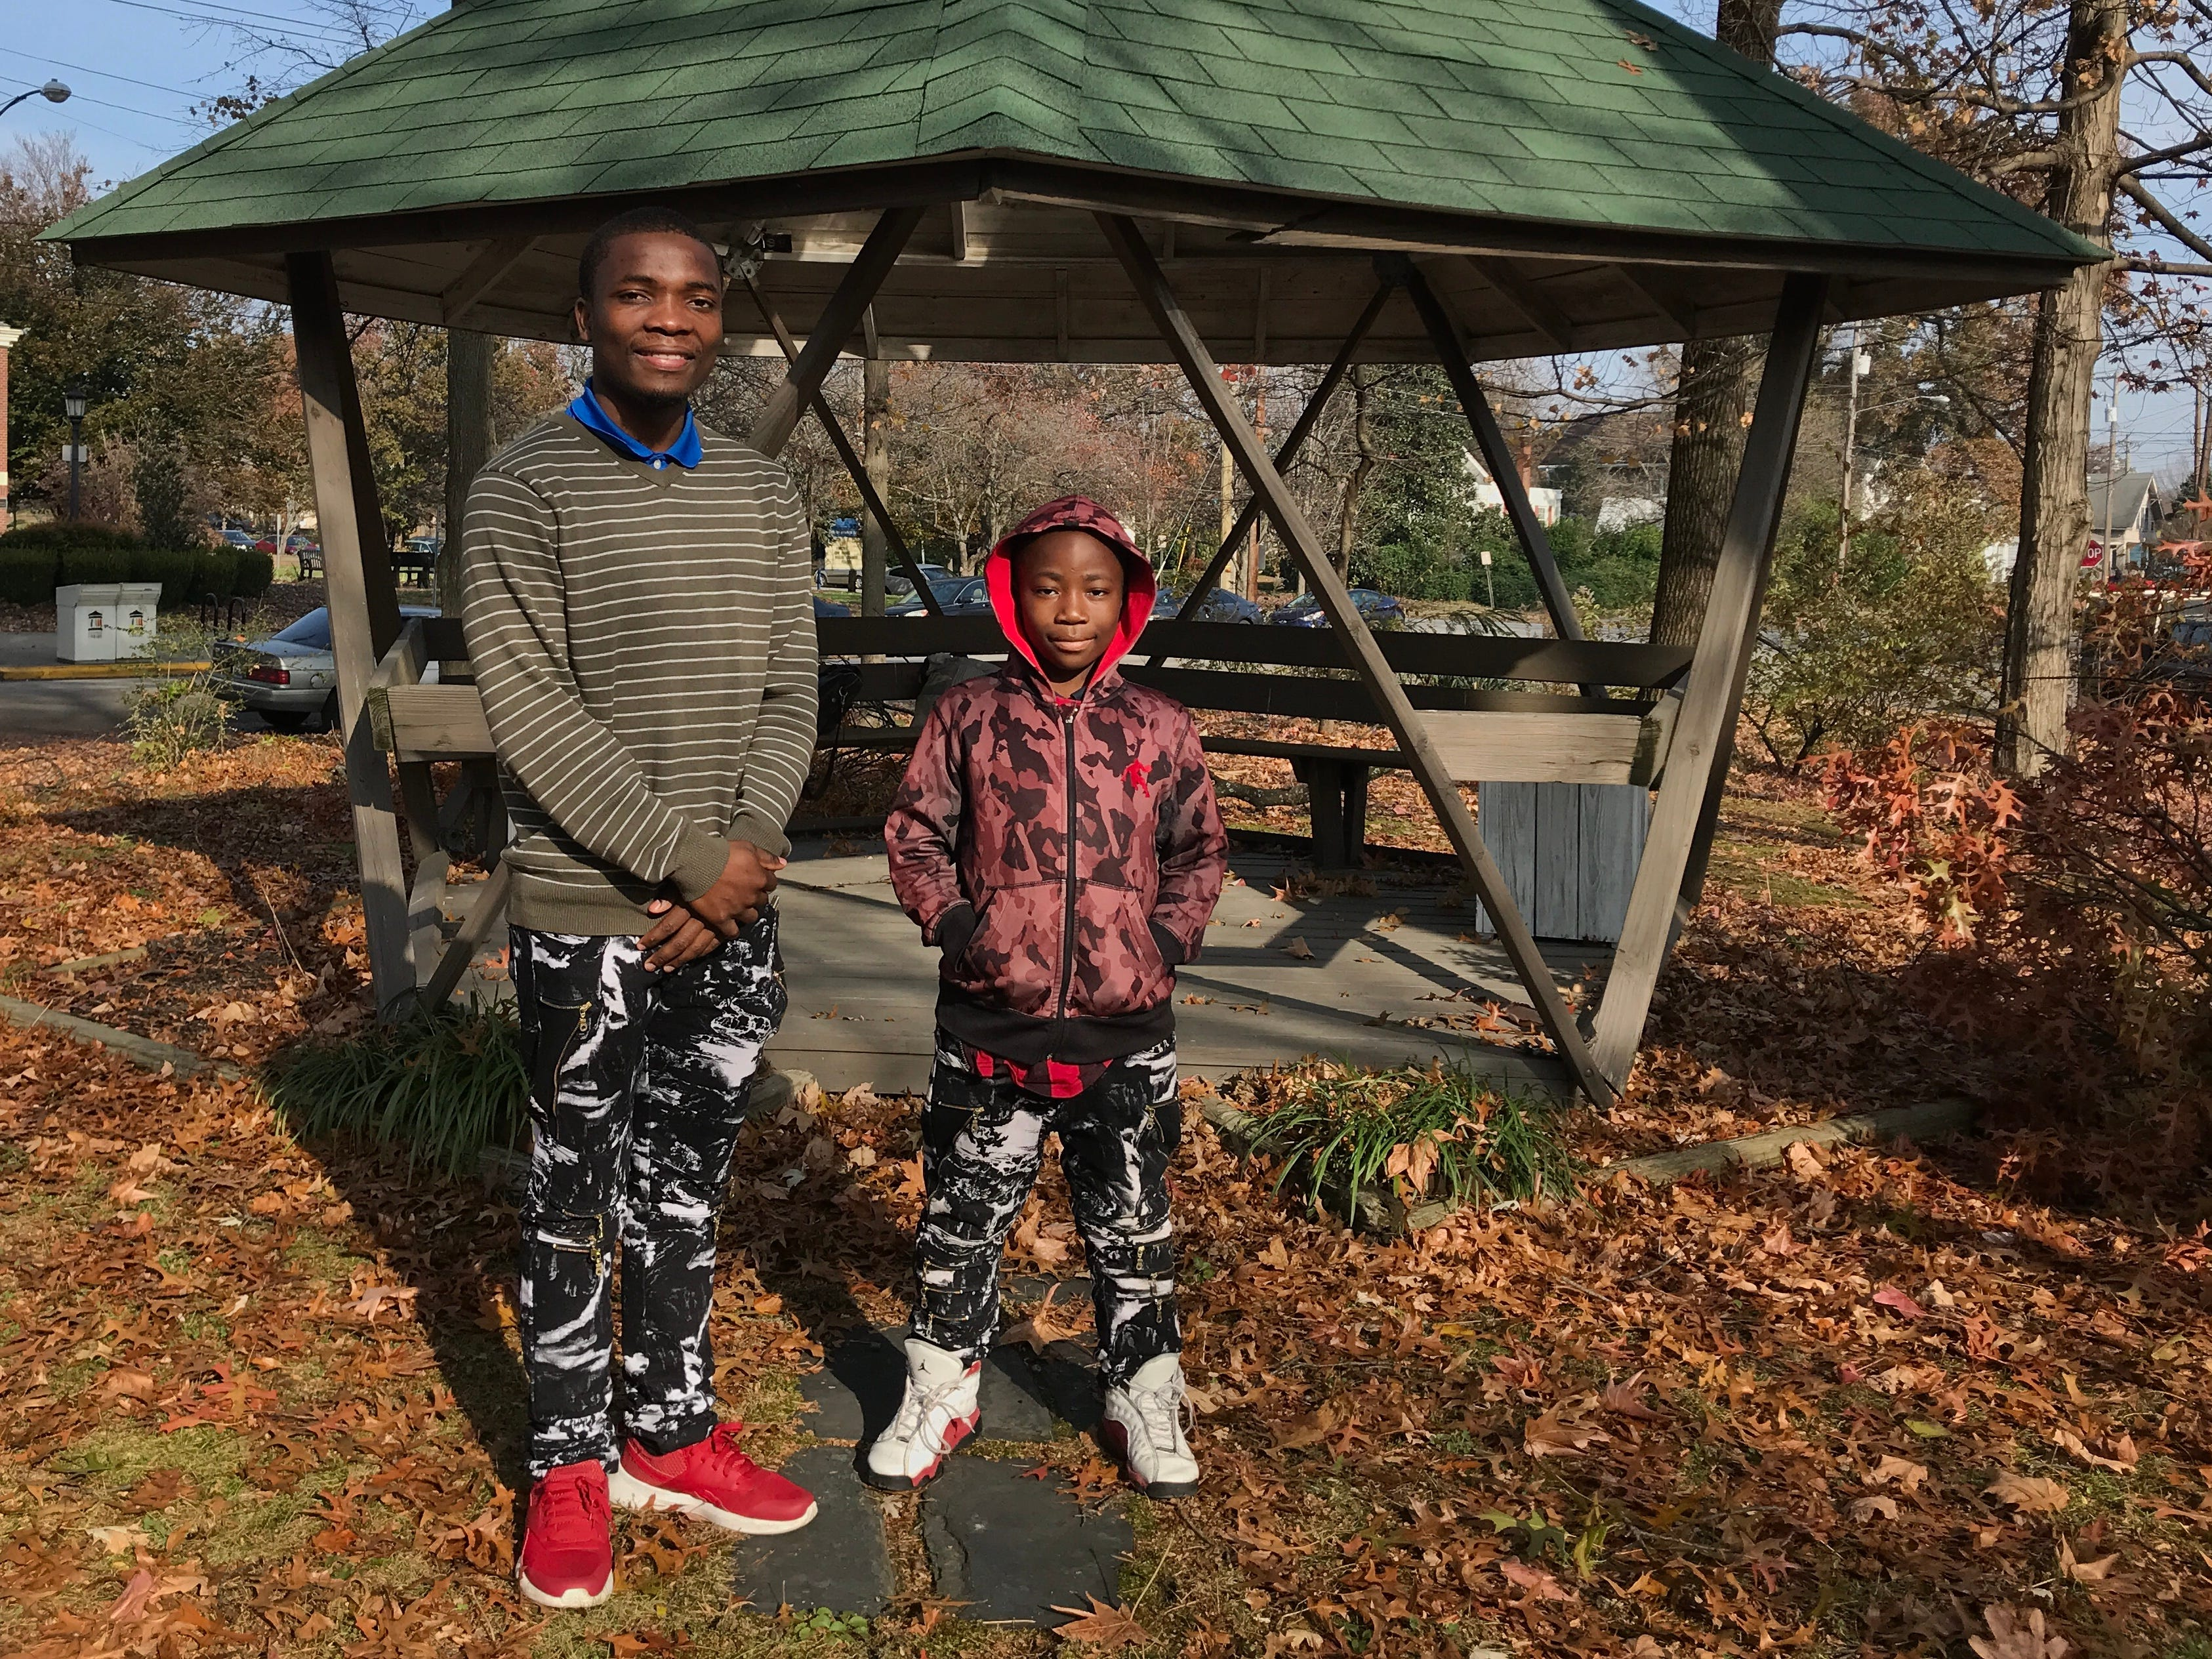 Alinoti Malebo, left, and his brother Shukuru moved to the United States with their parents and five other siblings in 2015. They previously grew up in a refugee camp in Tanzania.